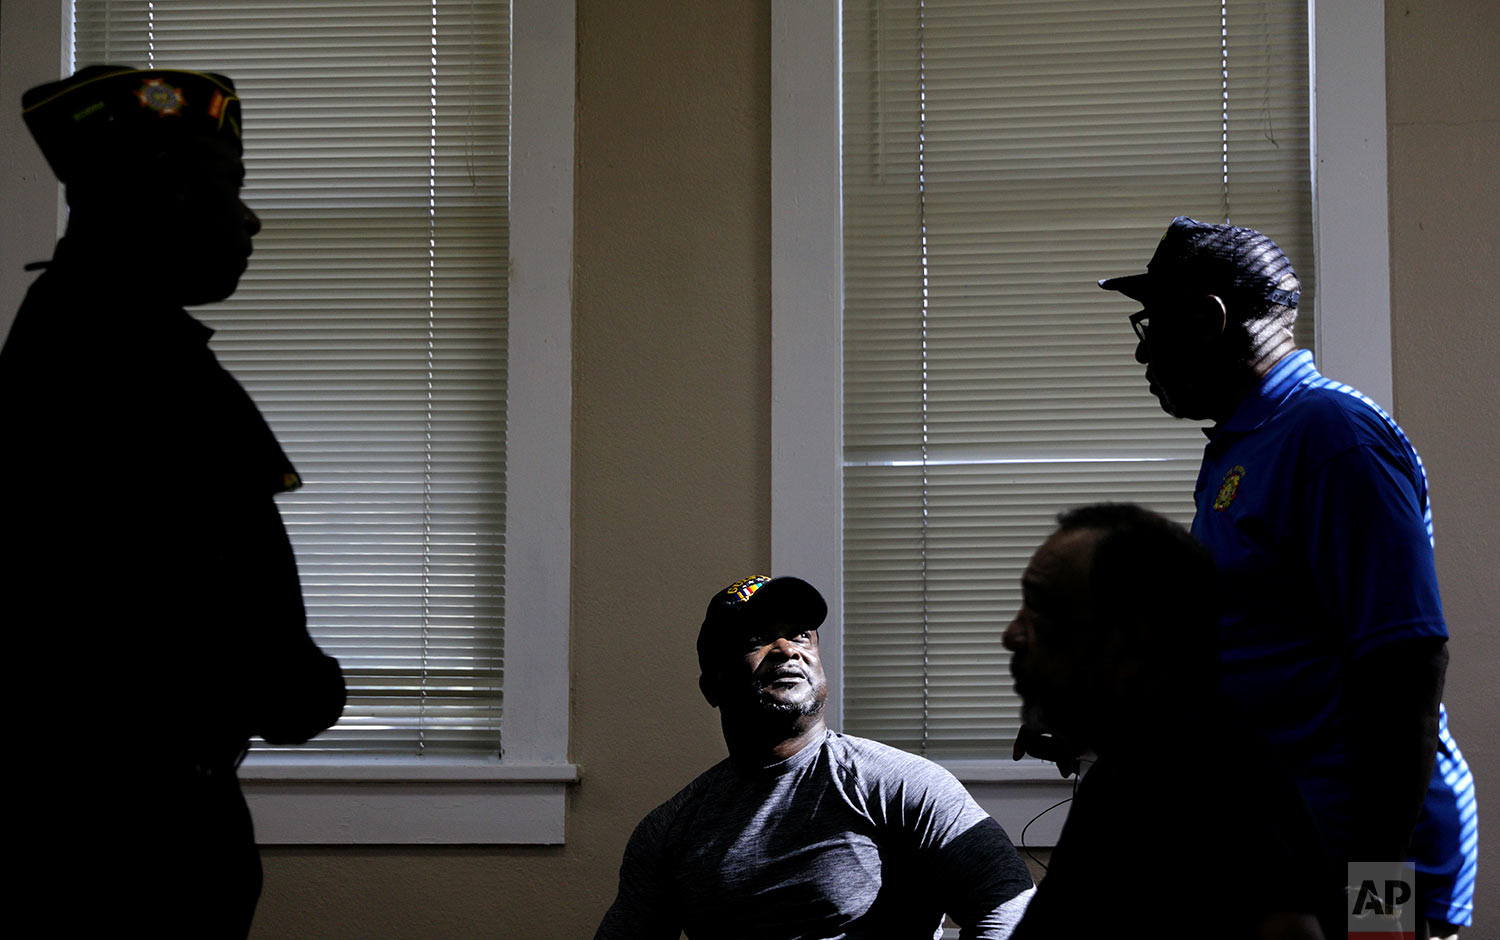 """U.S. Army Gulf War veteran Robert Tolbert, center, who supports the protests of kneeling during the national anthem, speaks with fellow veterans at a Veterans of Foreign Wars meeting in Lumberton, N.C., Saturday, Oct. 28, 2017. """"Everybody's mad at each other because everybody's got their opinion on this,"""" Tolbert bemoaned to the group of mostly African-American war veterans, and recounted the exchange. """"I said, 'look brother, we've got to understand why we came into the military, why we fought for this. Don't let the media and politicians divide us because we all believe in the same thing - we believe in justice, we believe in freedom of speech - because that's what we fought for. Isn't it?"""" (AP Photo/David Goldman)"""